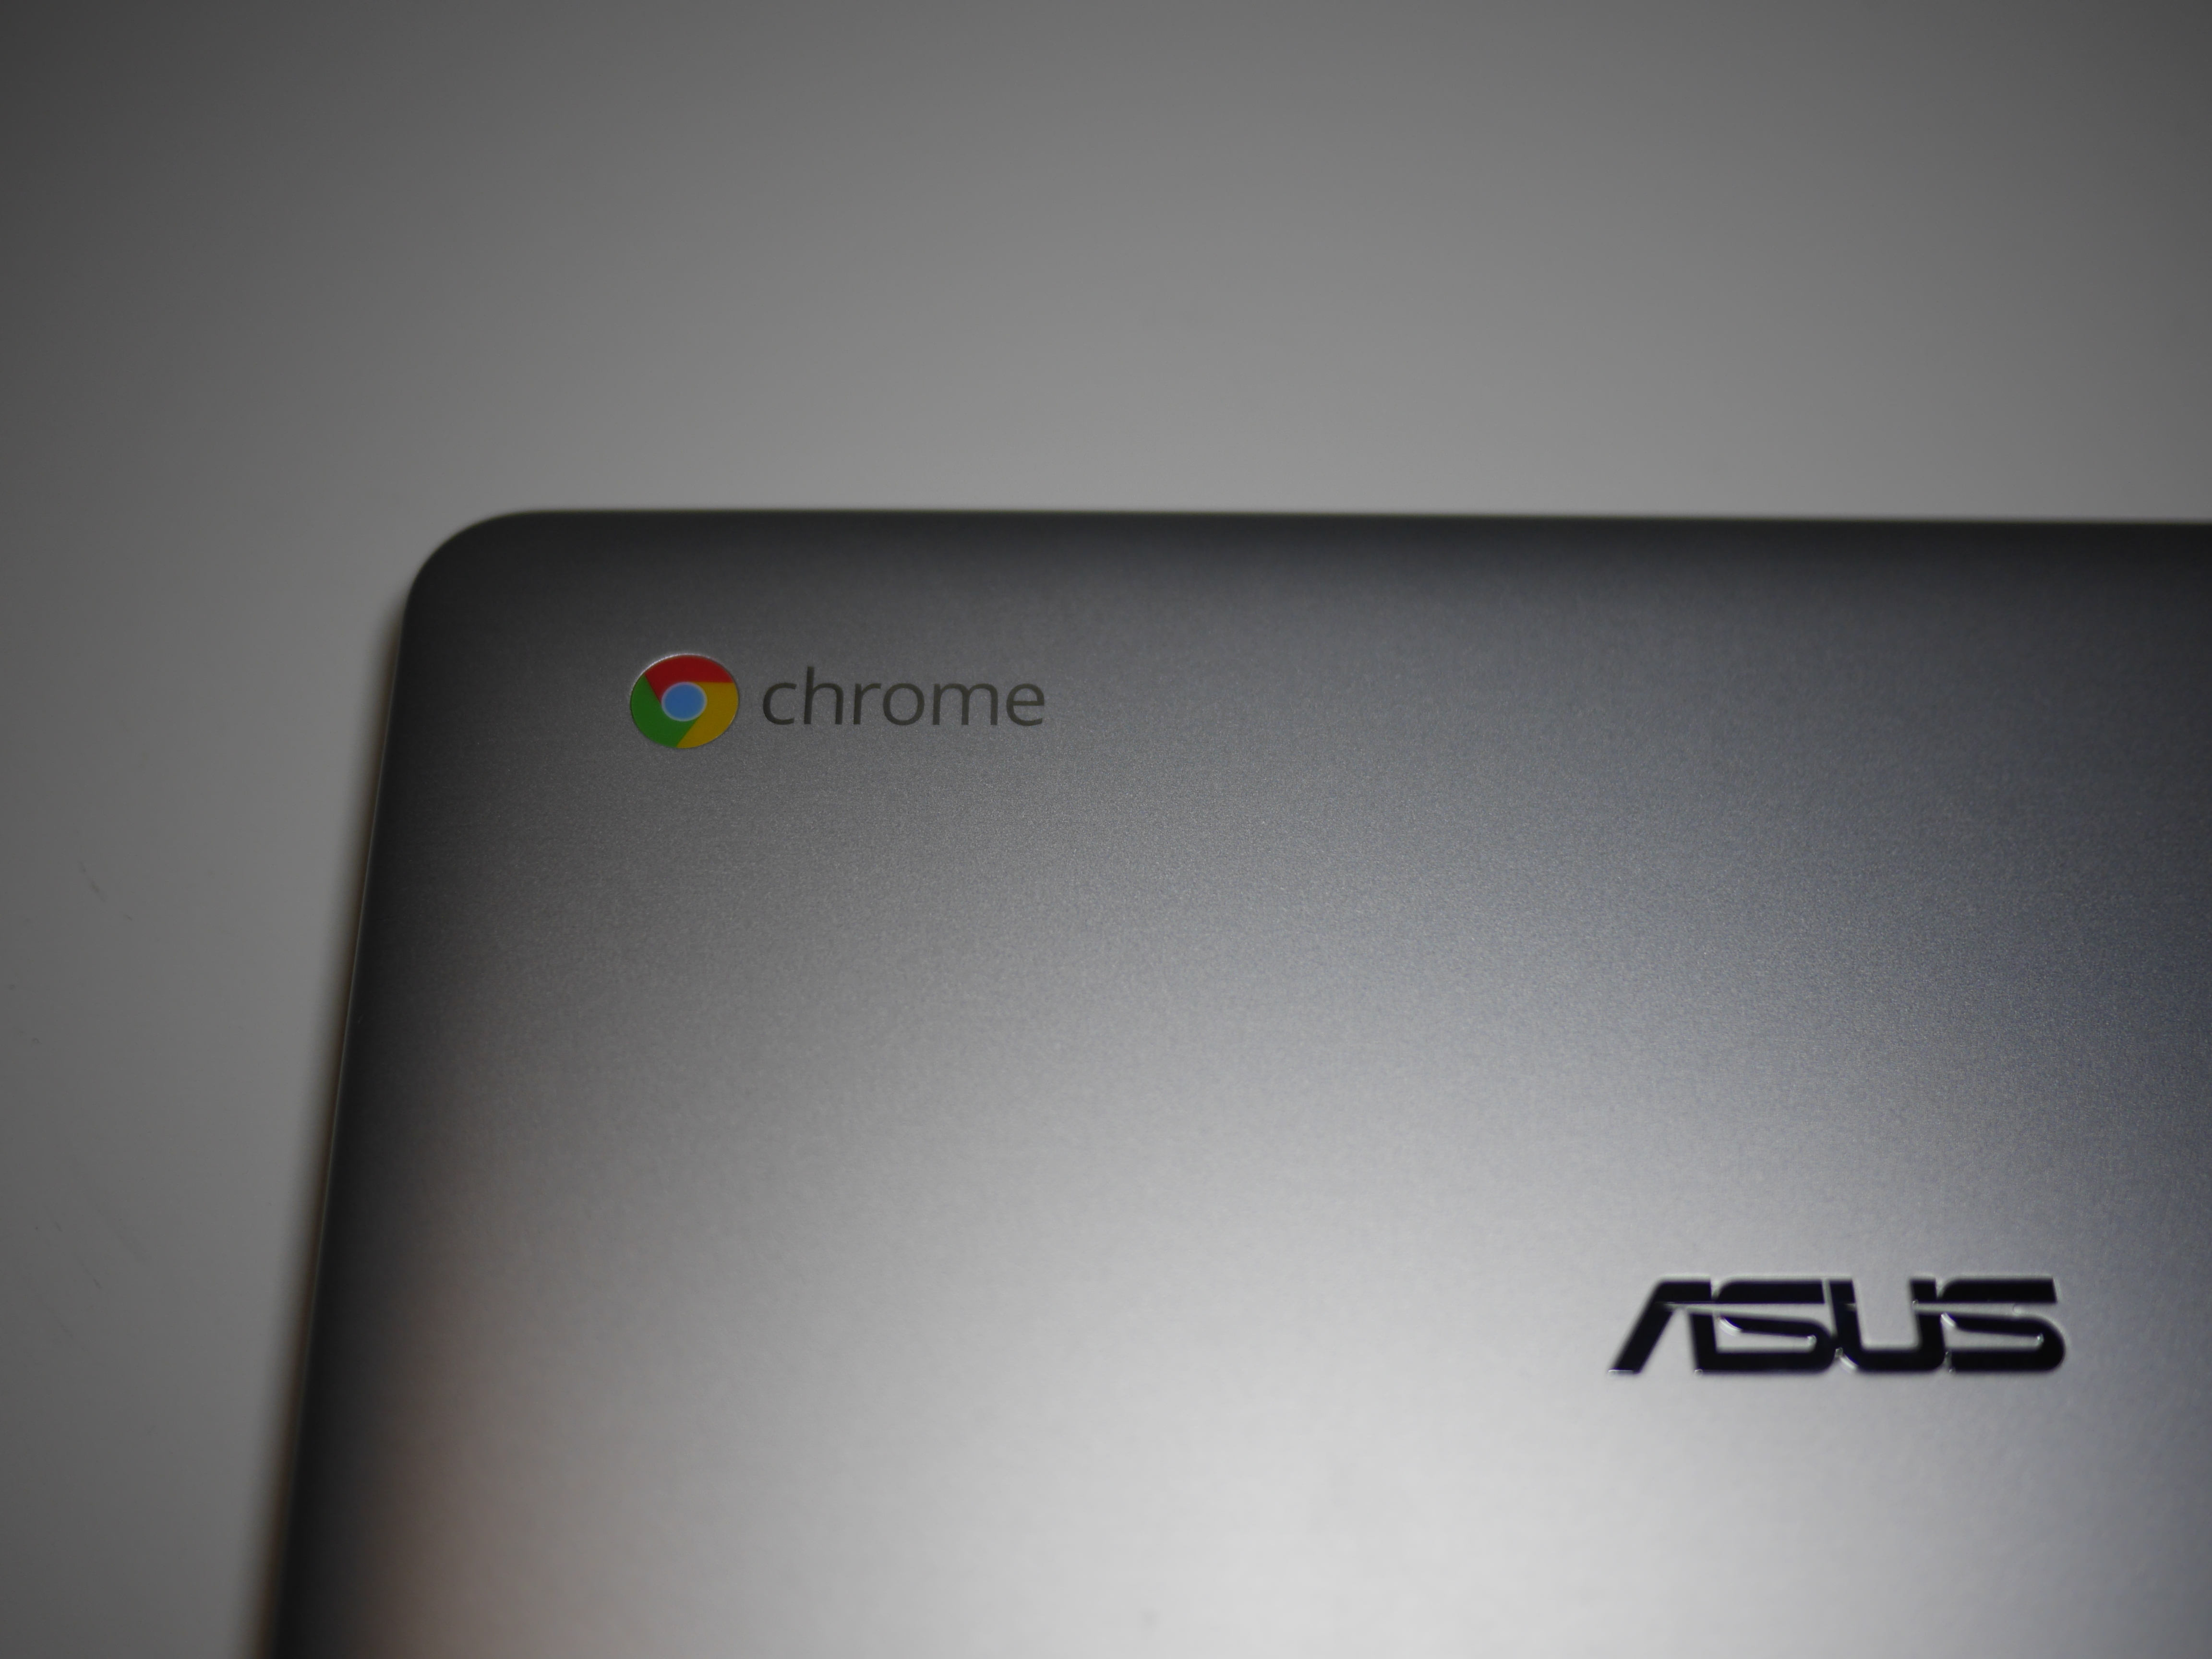 chrome book(ASUS Chromebook Flip C100PA)を購入しました!